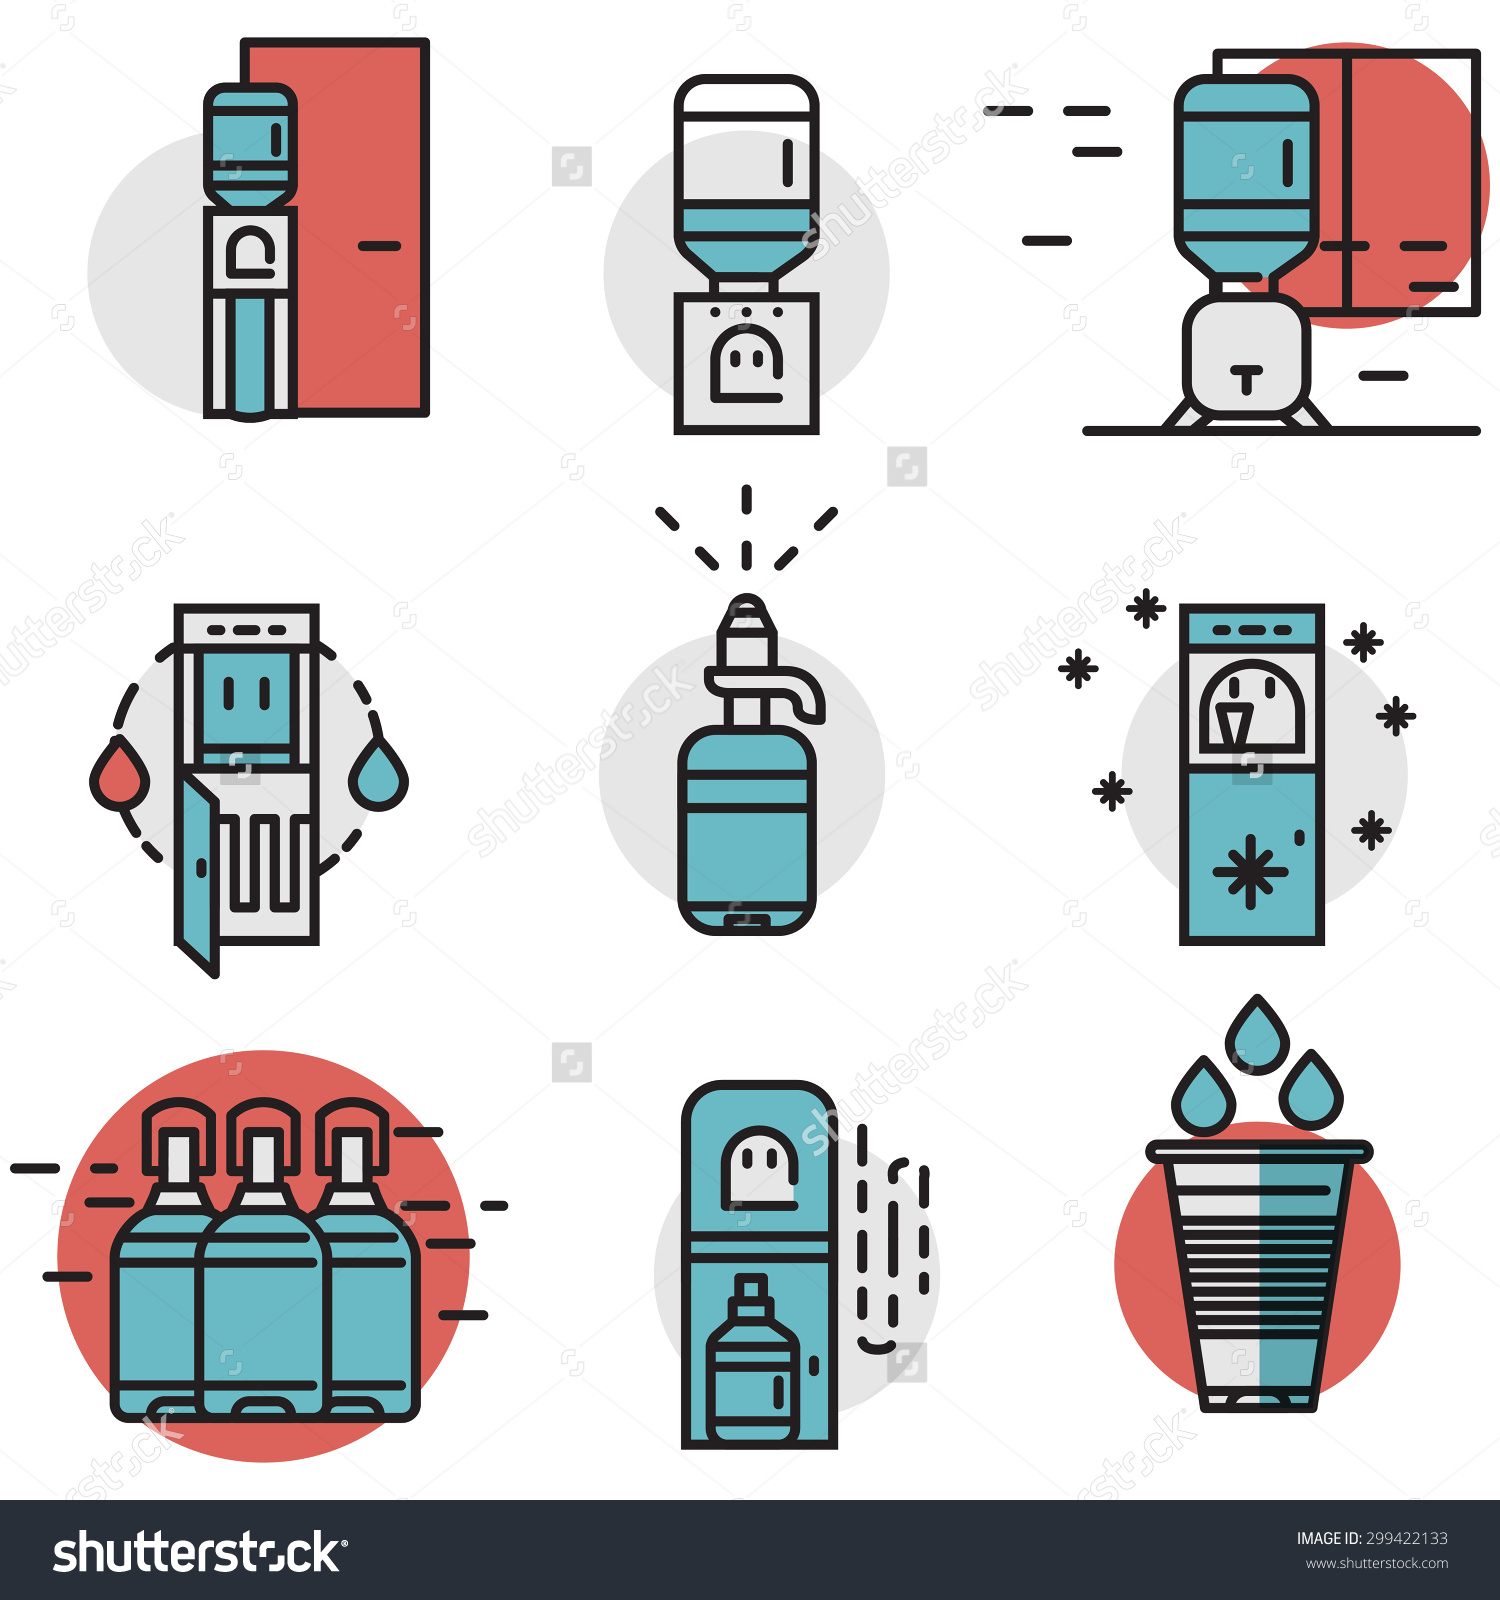 Flat line design blue and red vector icons for water cooler.